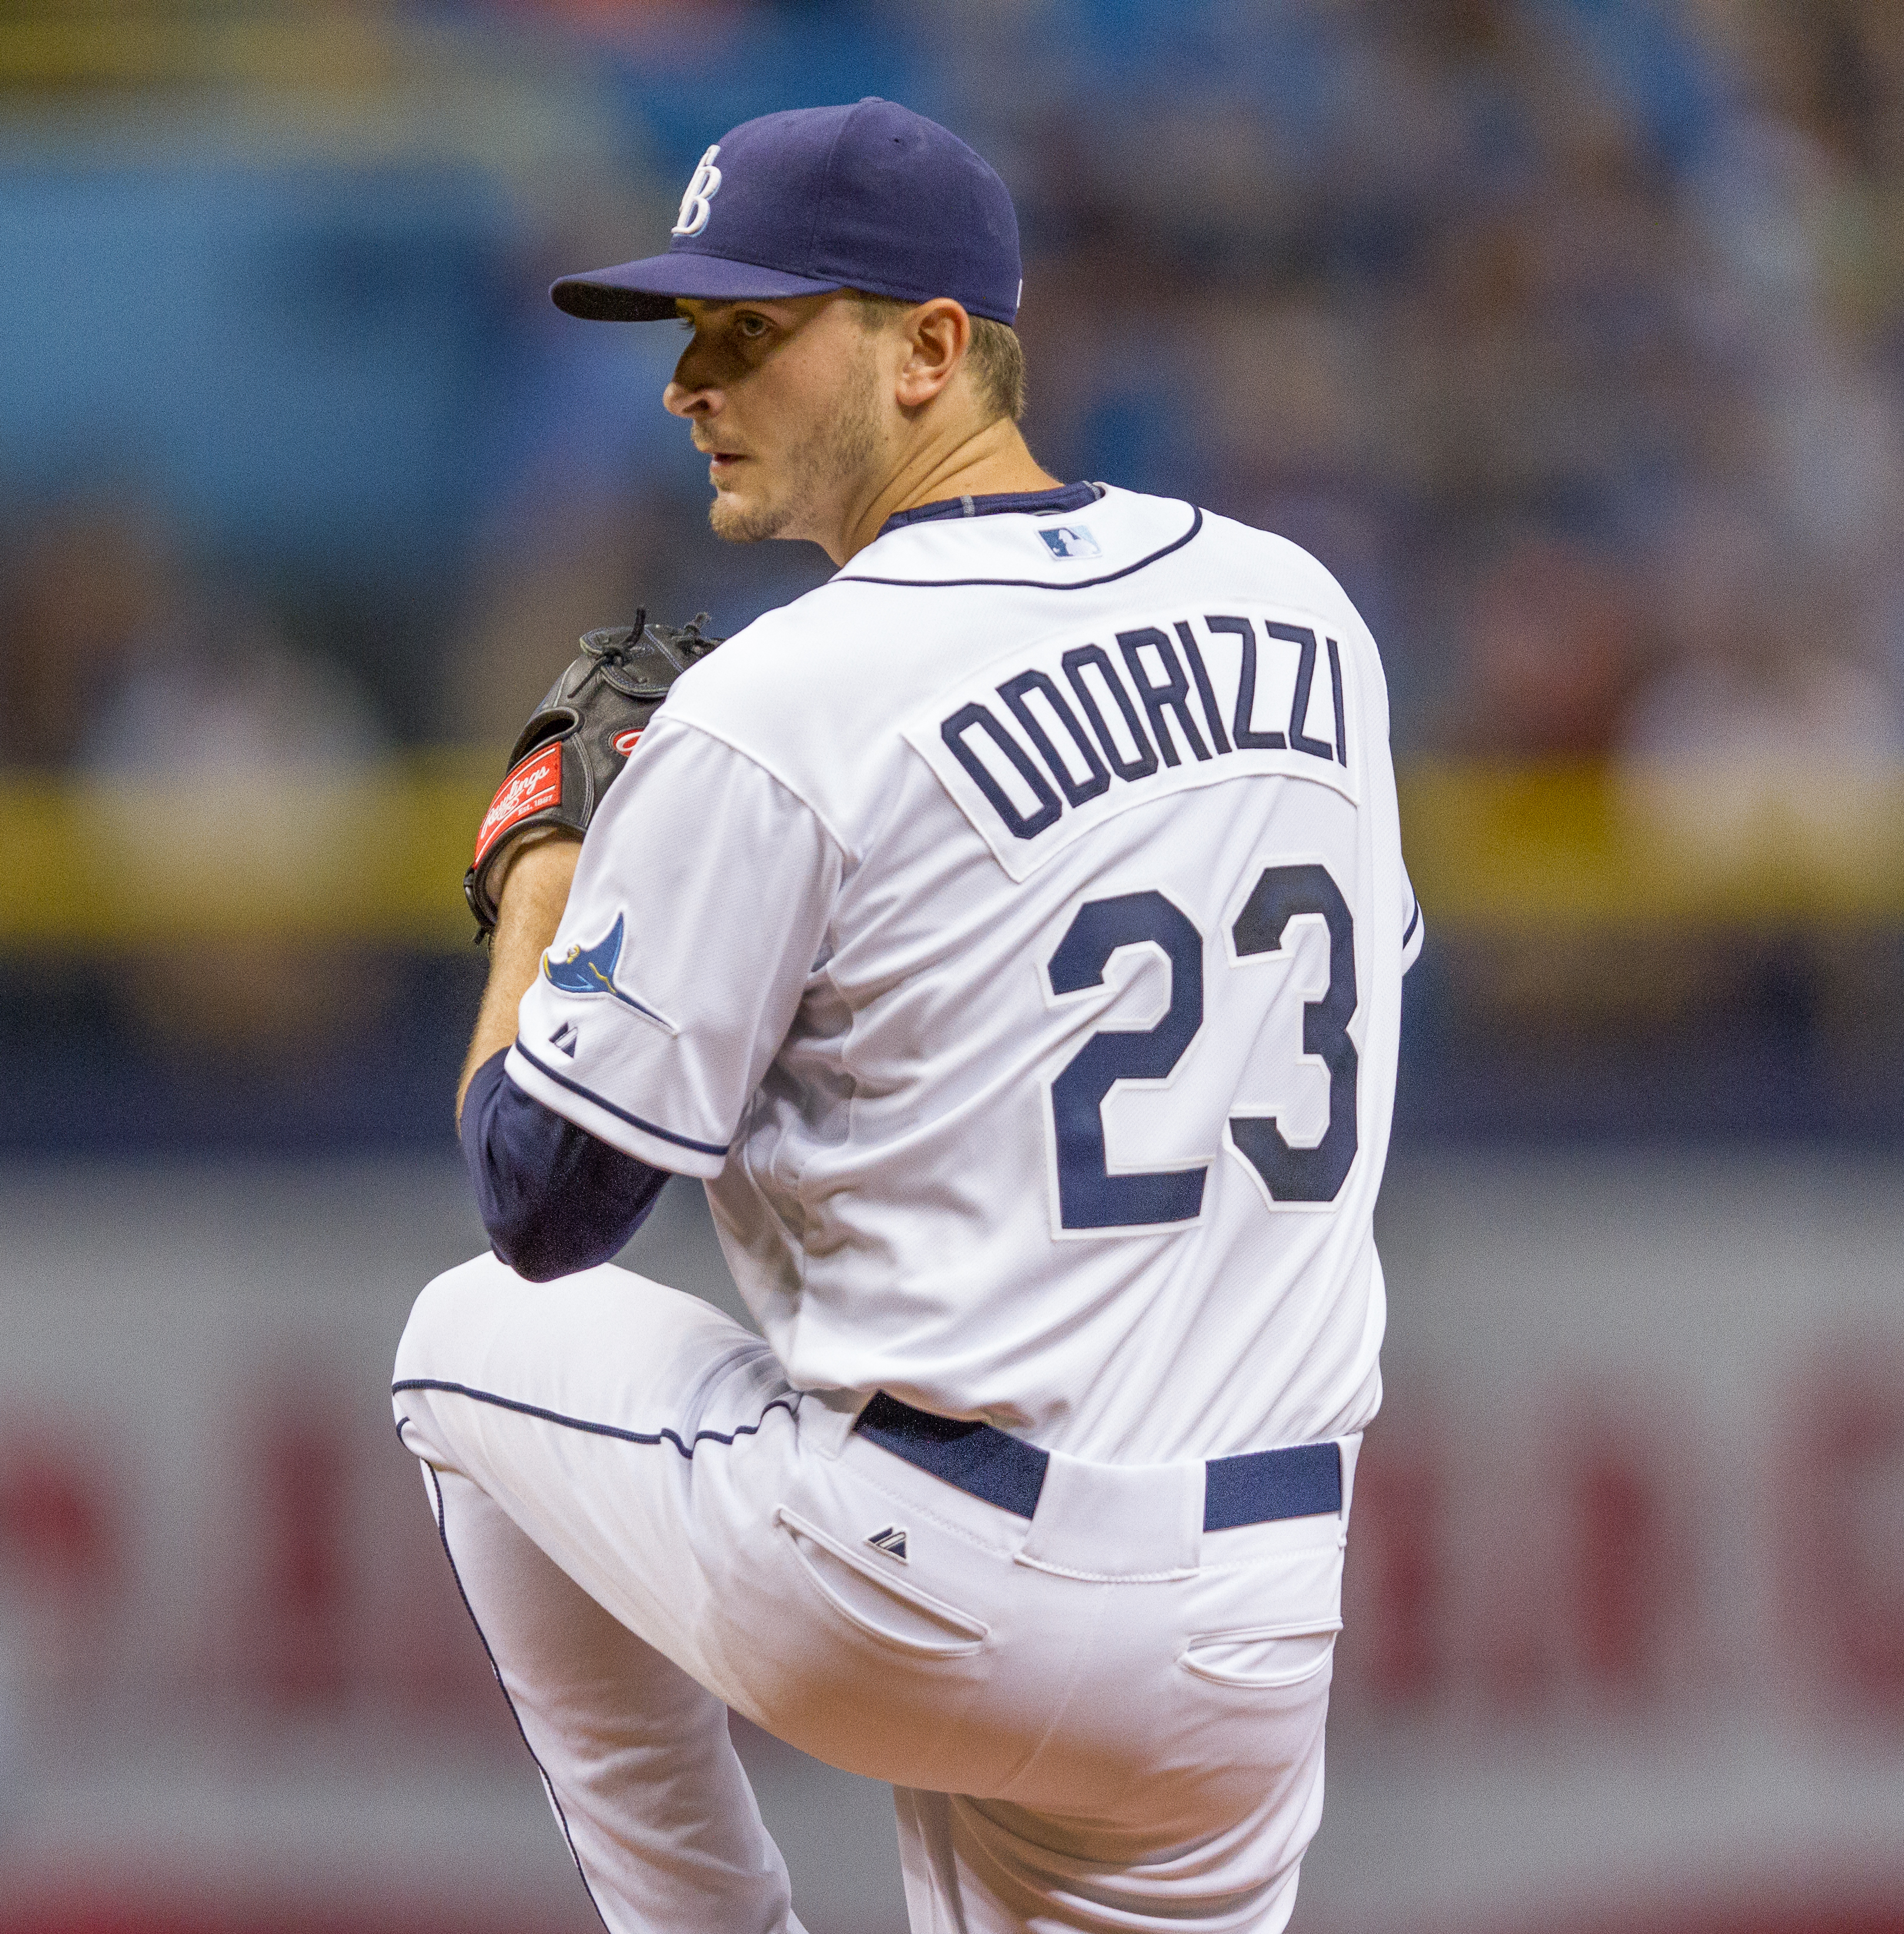 Odorizzi had a rough outing for Rays./JEFFREY S. KING